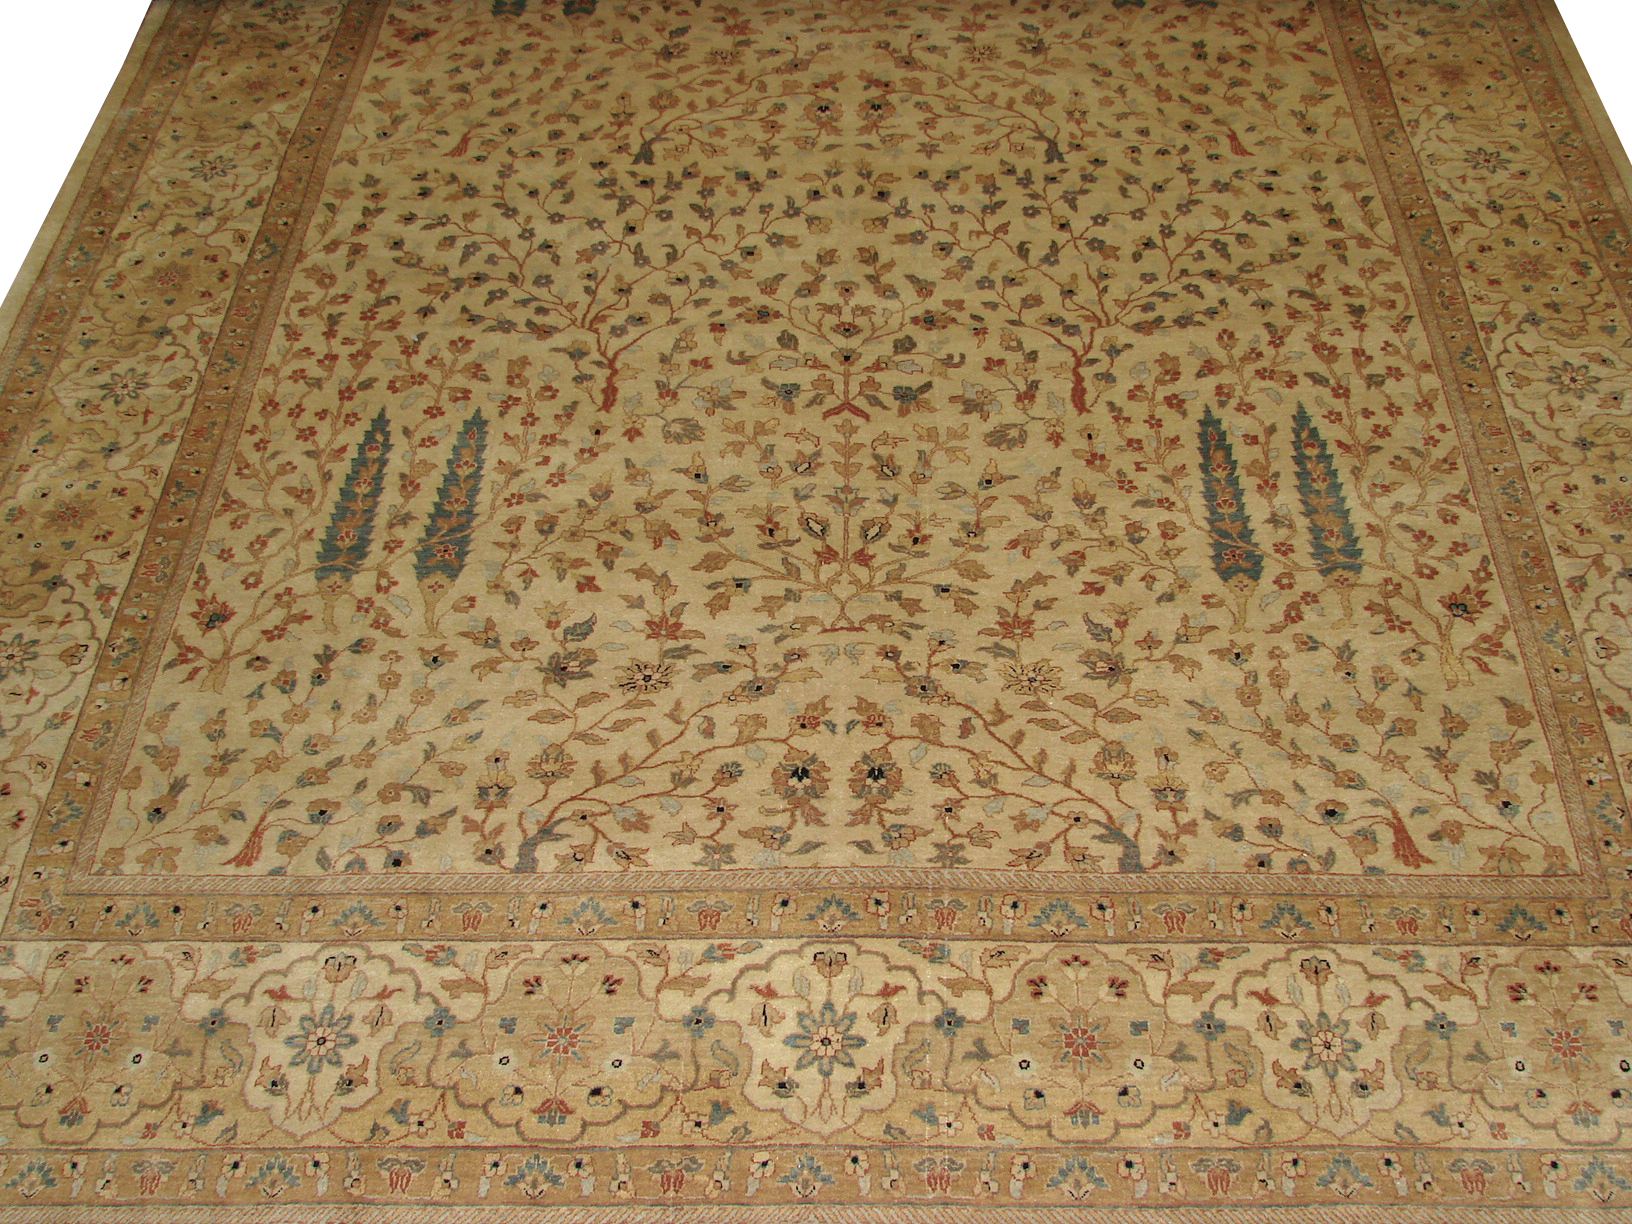 10x14 Traditional Hand Knotted Wool Area Rug - MR6099